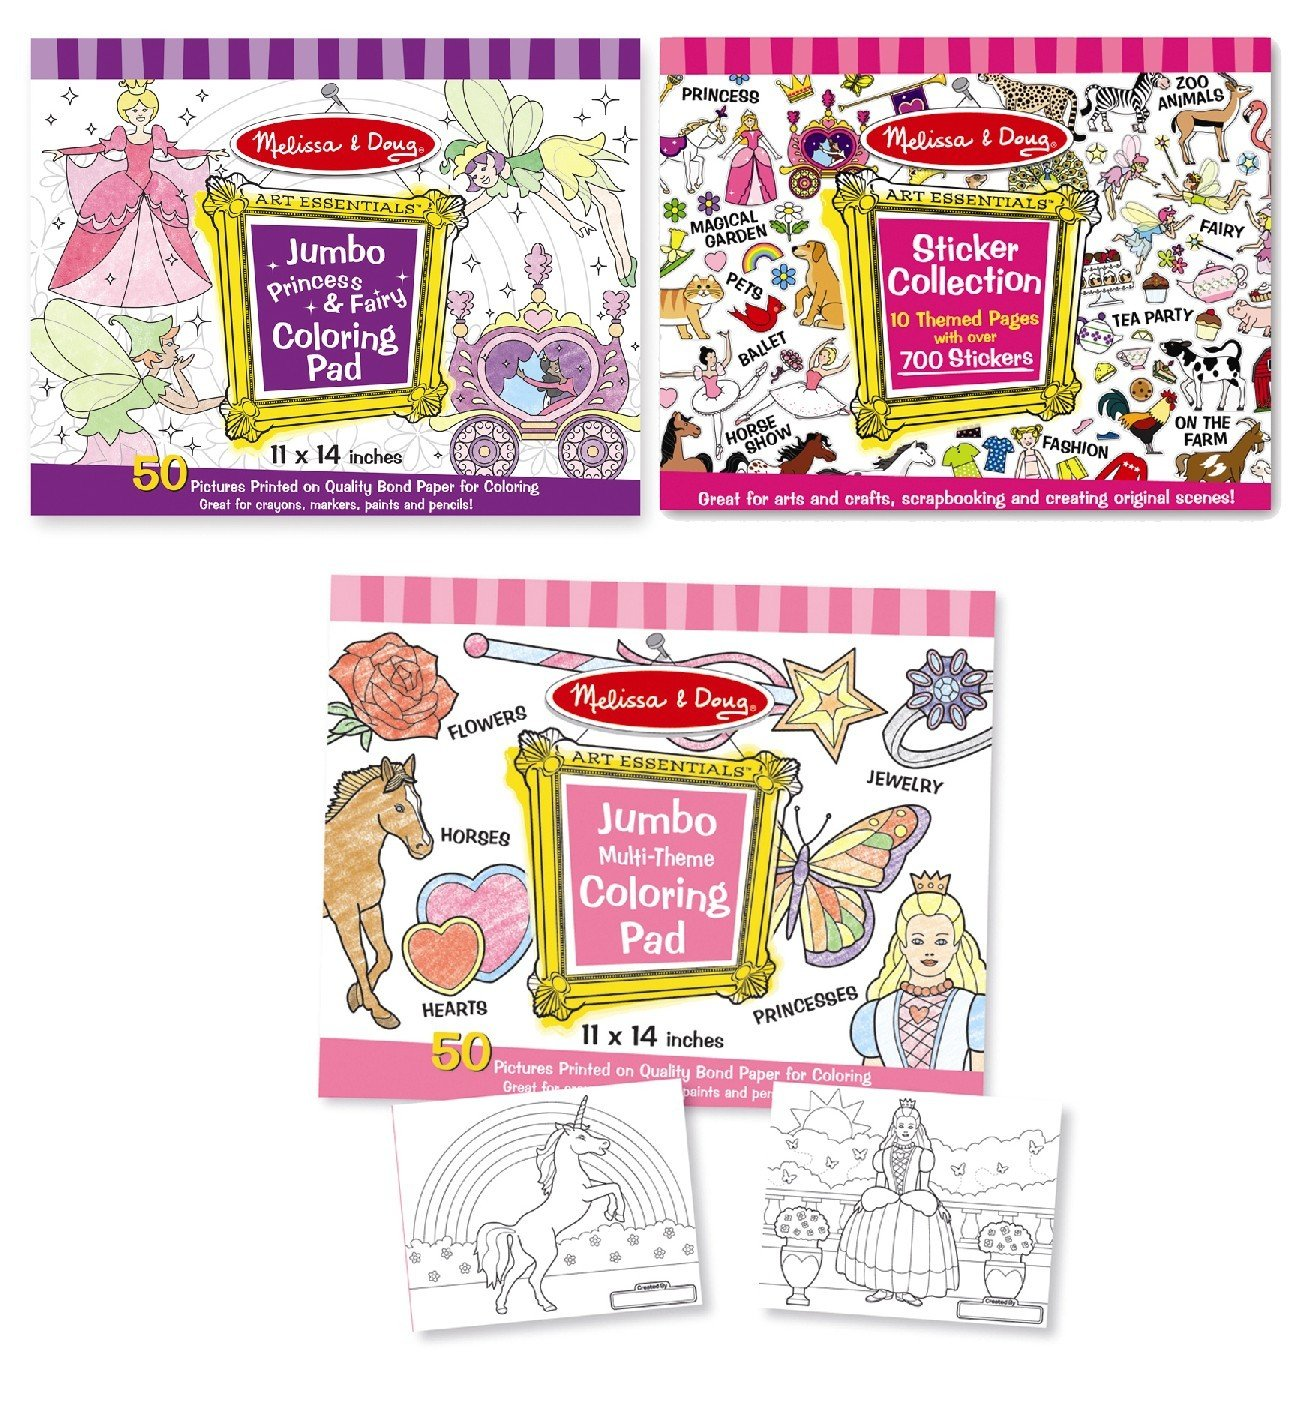 Amazon.com: Melissa & Doug Sticker Collection and Coloring Pads ...